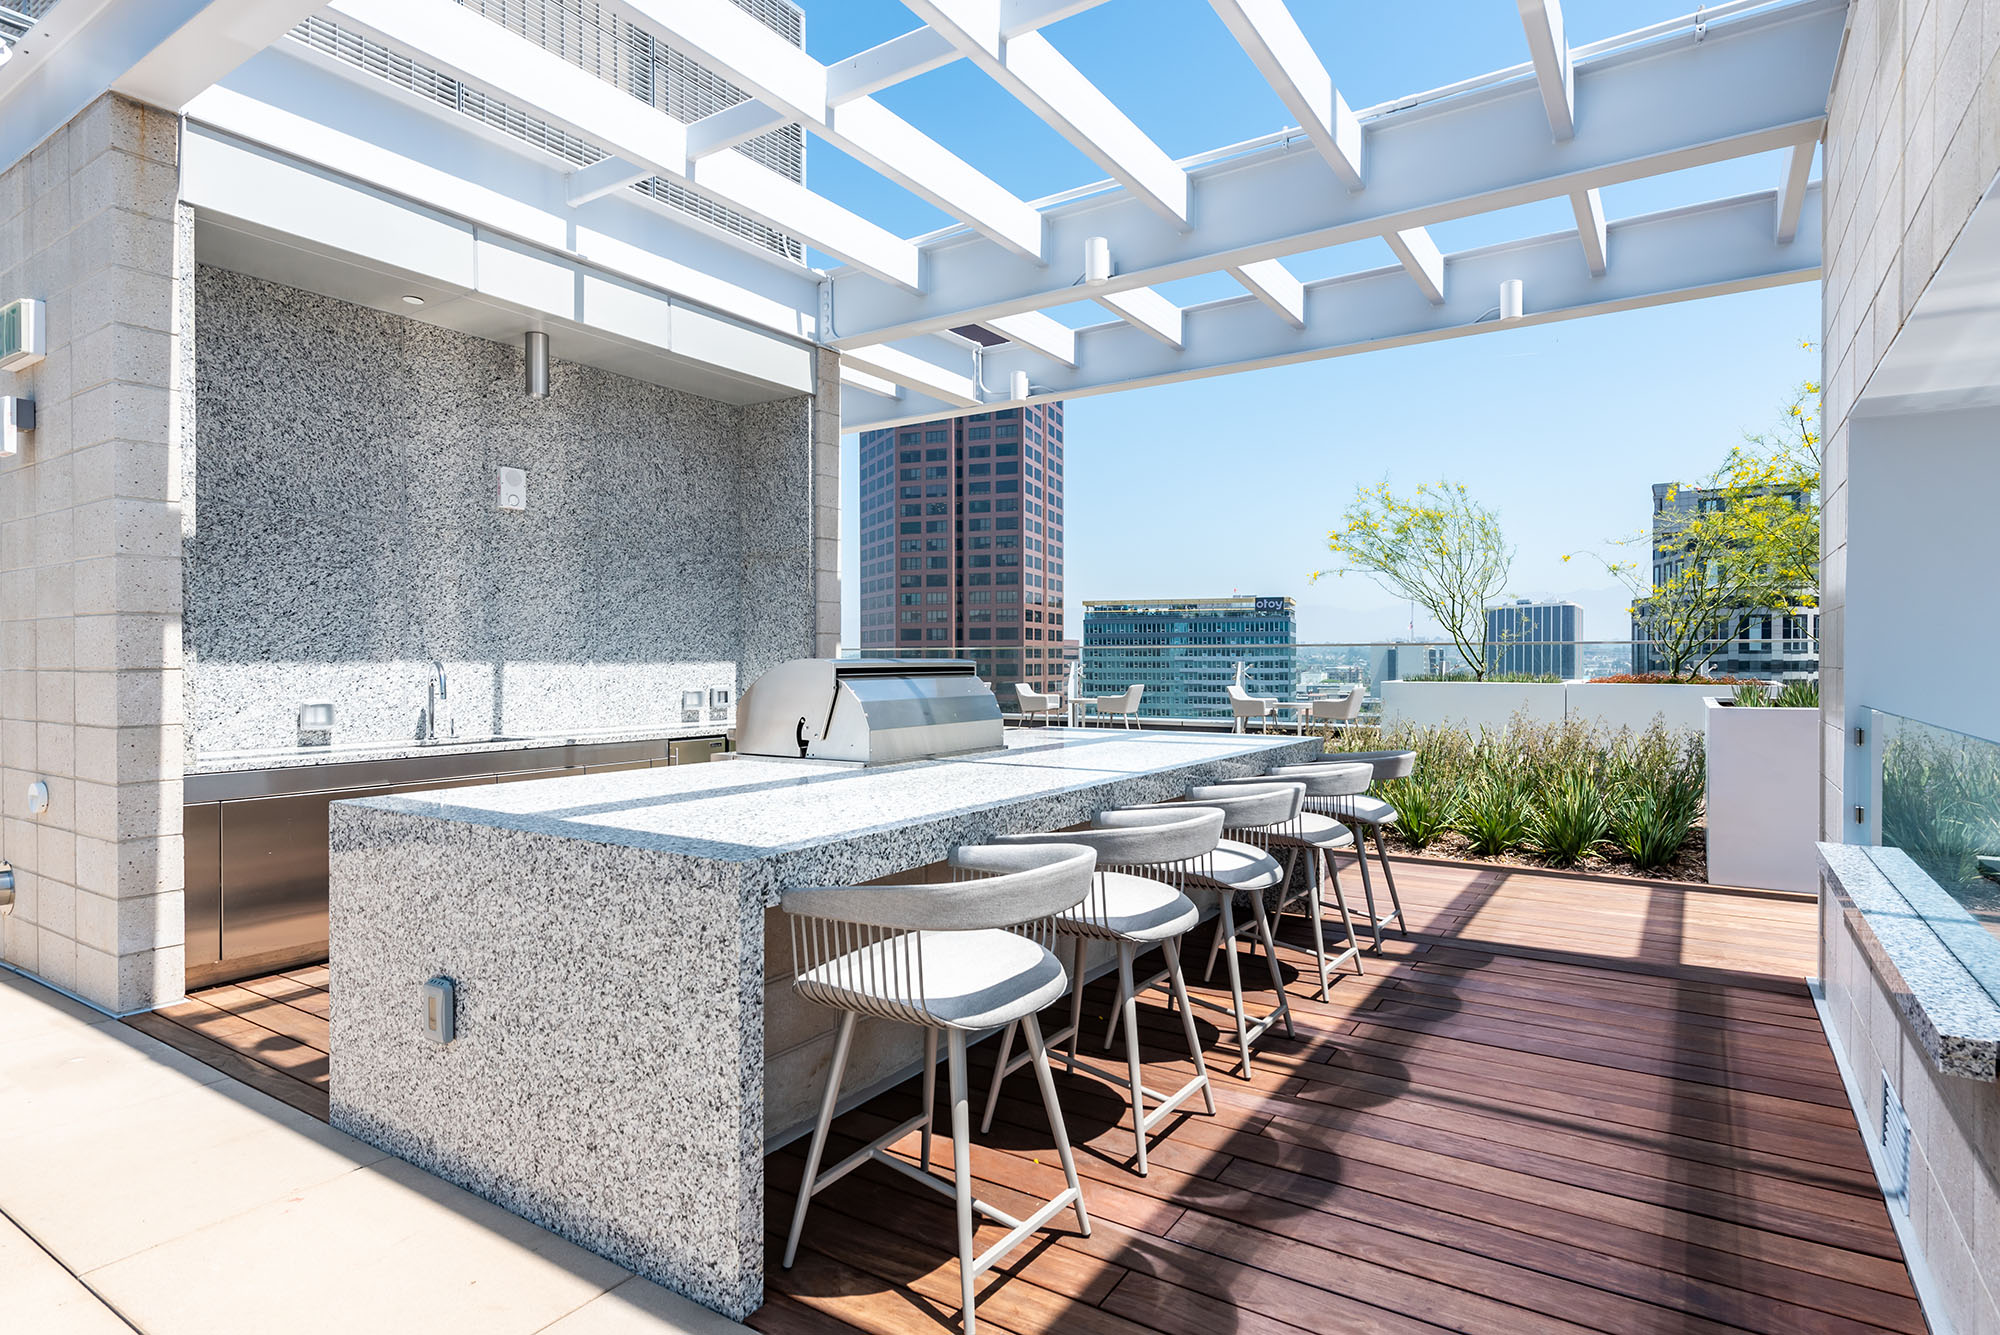 Dog Friendly Residences in Downtown Los Angeles, CA - THEA at Metropolis Rooftop BBQ Lounge with City Views and Table Seating